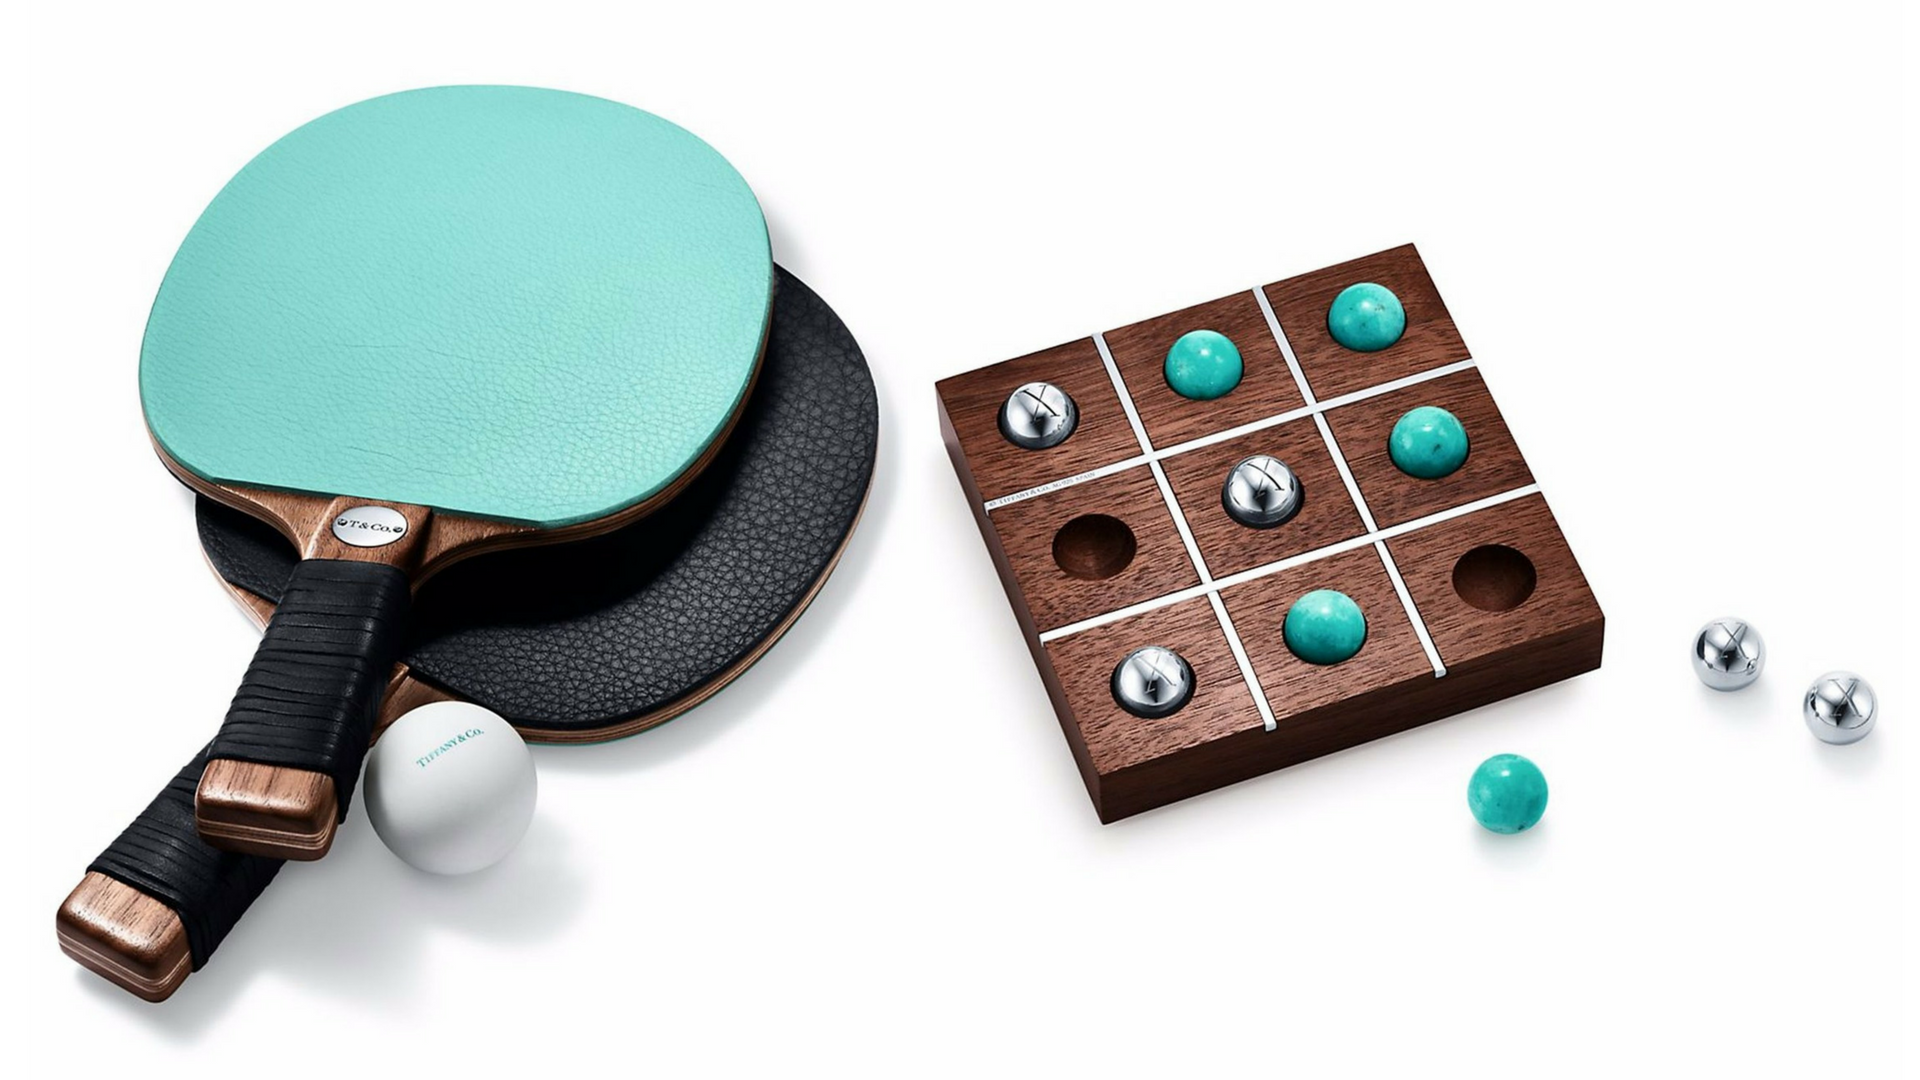 Tiffany's New Home Collection Will Leave You Speechless